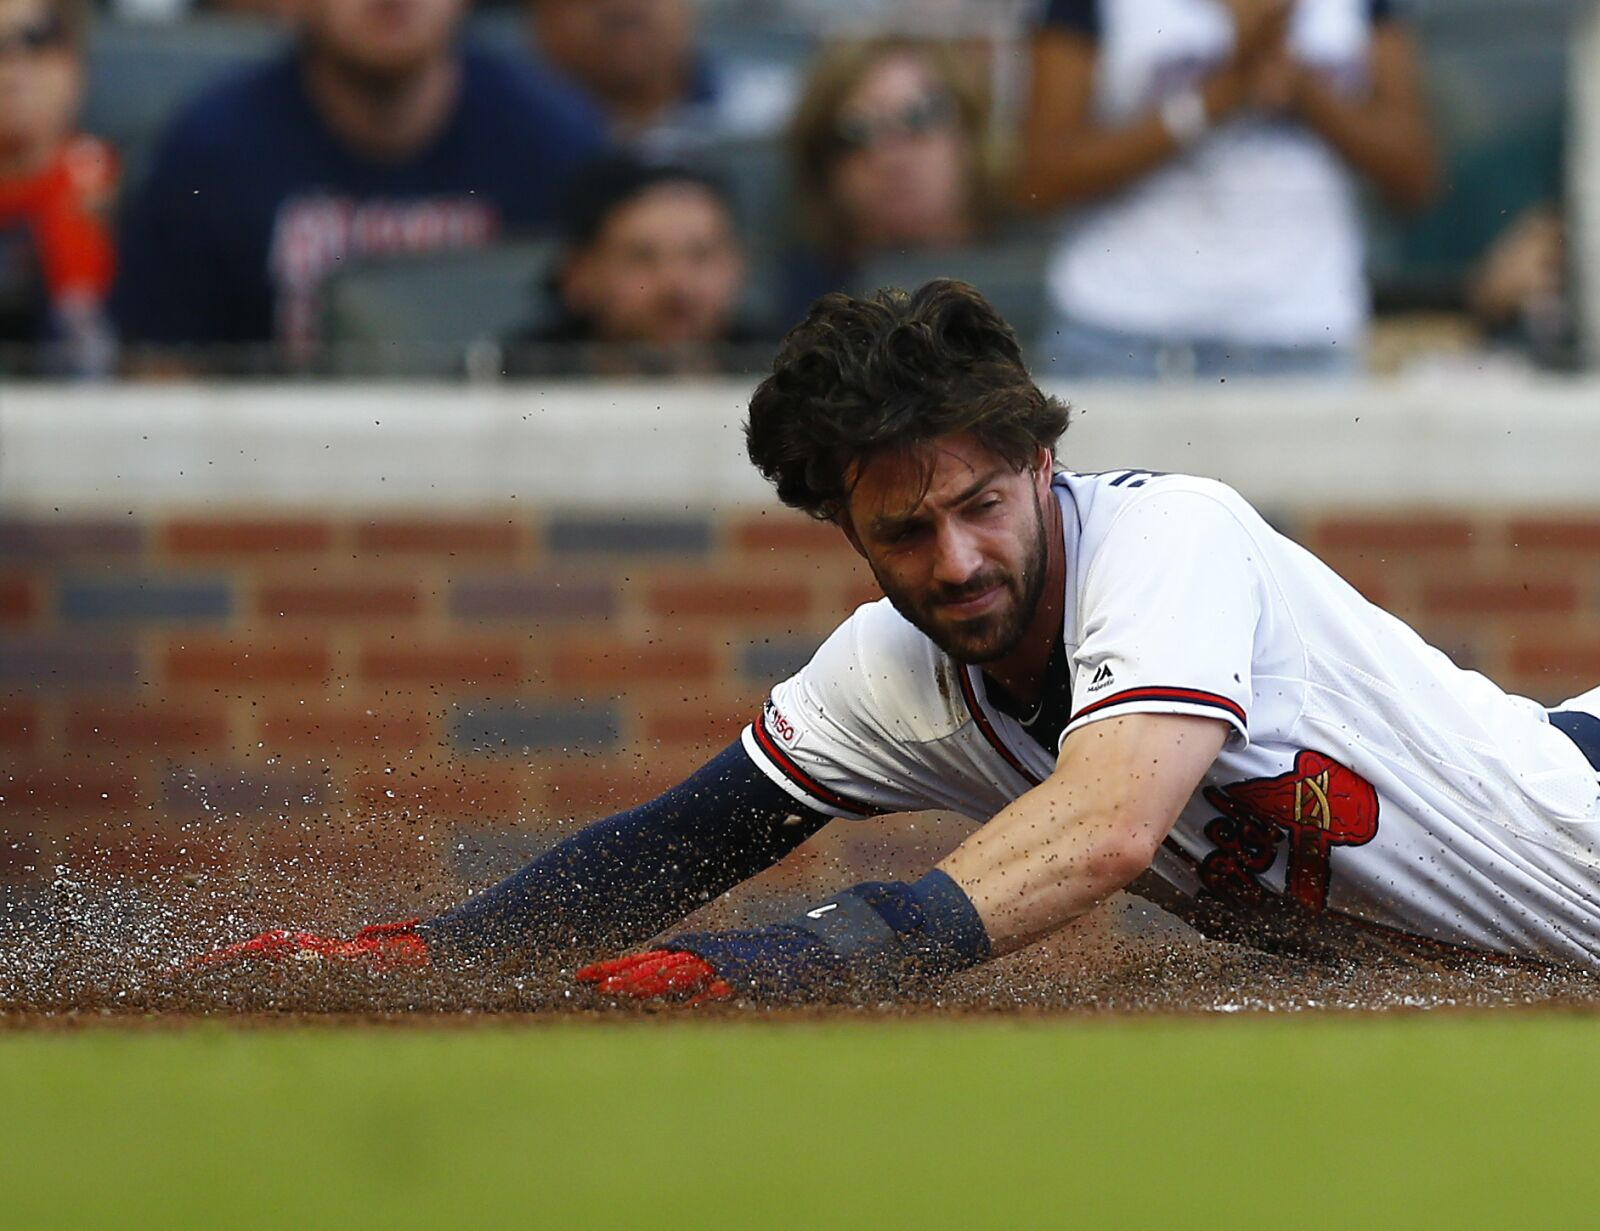 Atlanta Braves Morning Chop: how will the roster be handled this week?